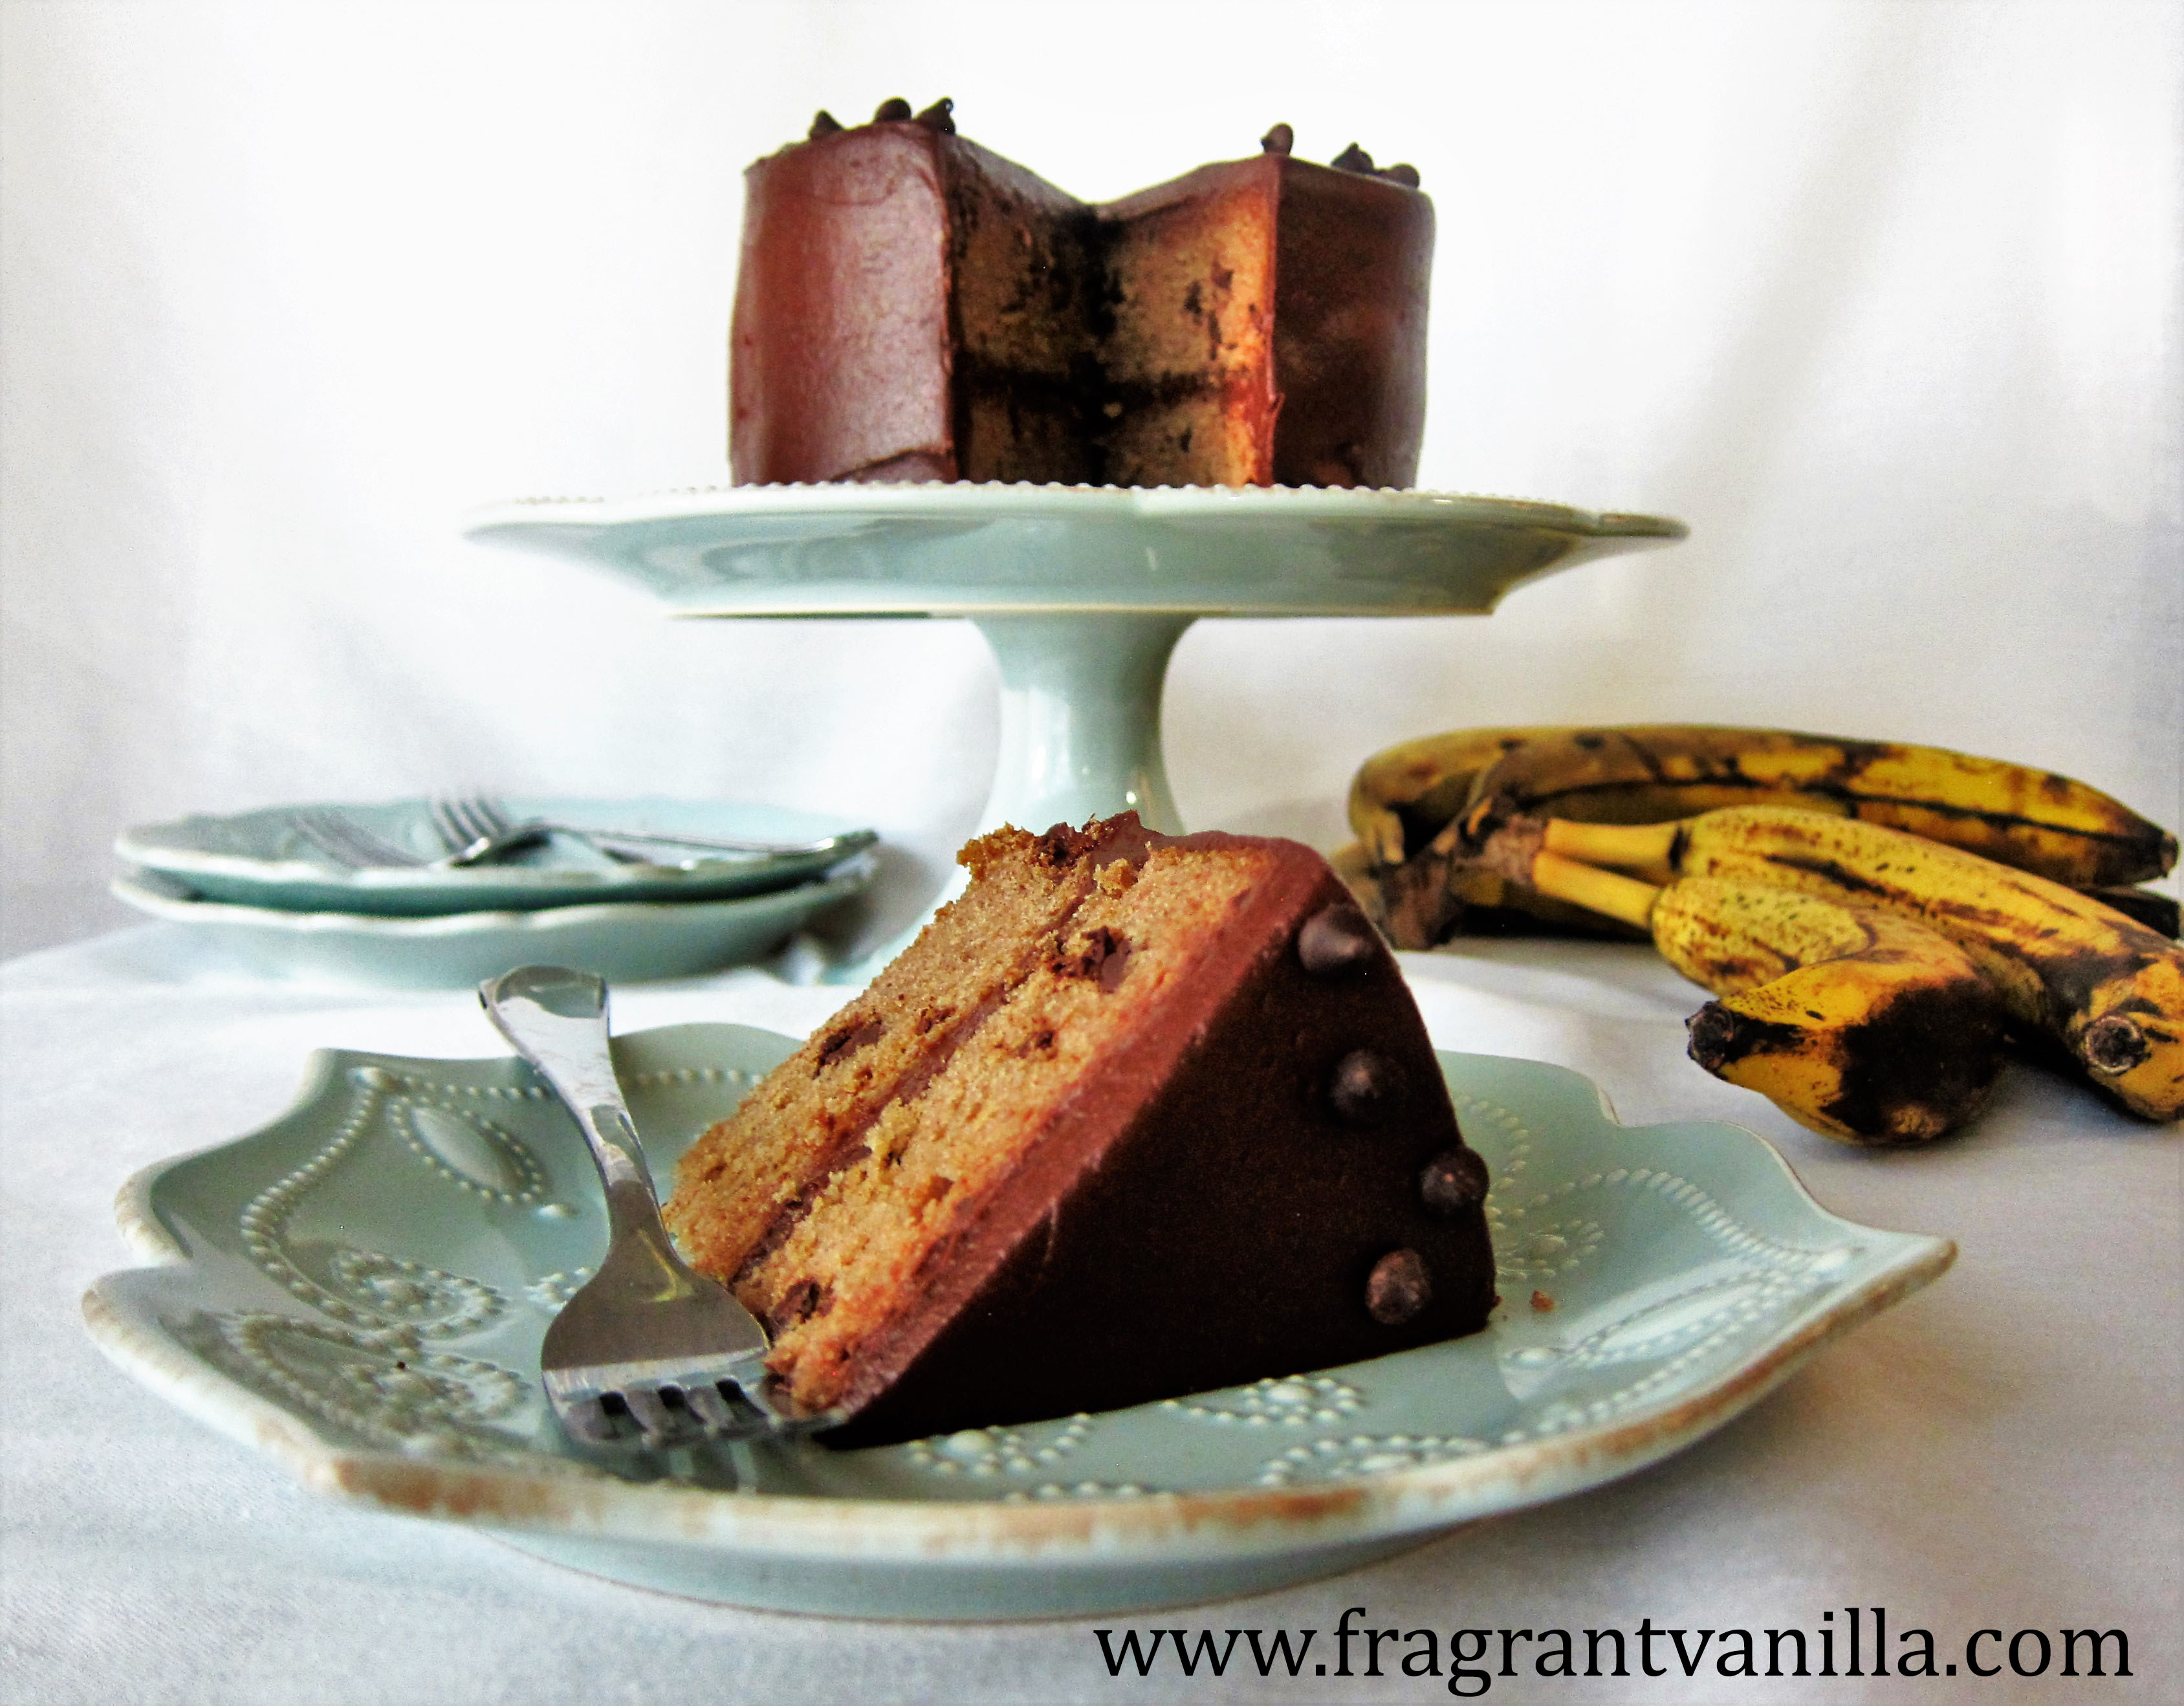 Vegan Chocolate Chip Banana Cake with Peanut Butter Fudge Frosting